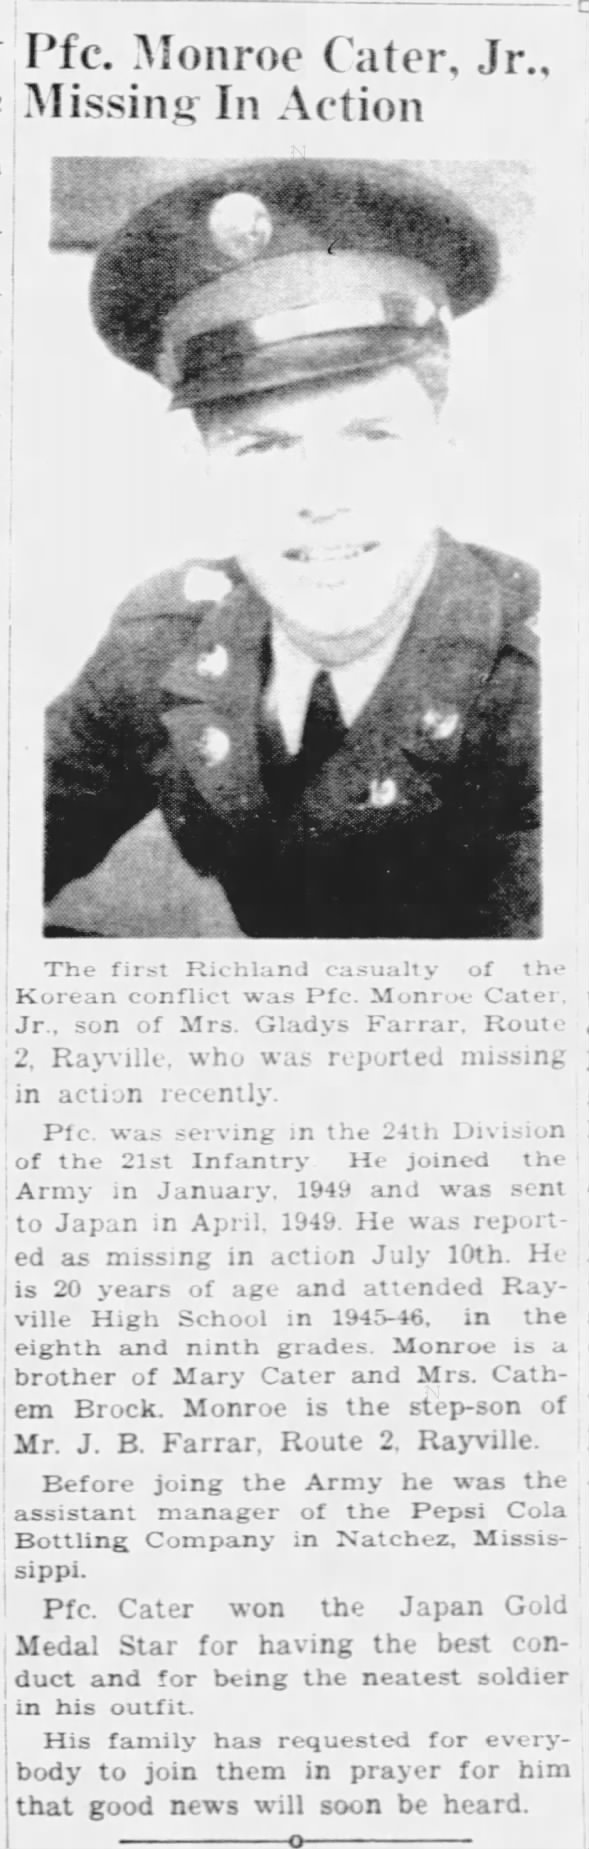 Pfc. Monroe Cater, Jr.